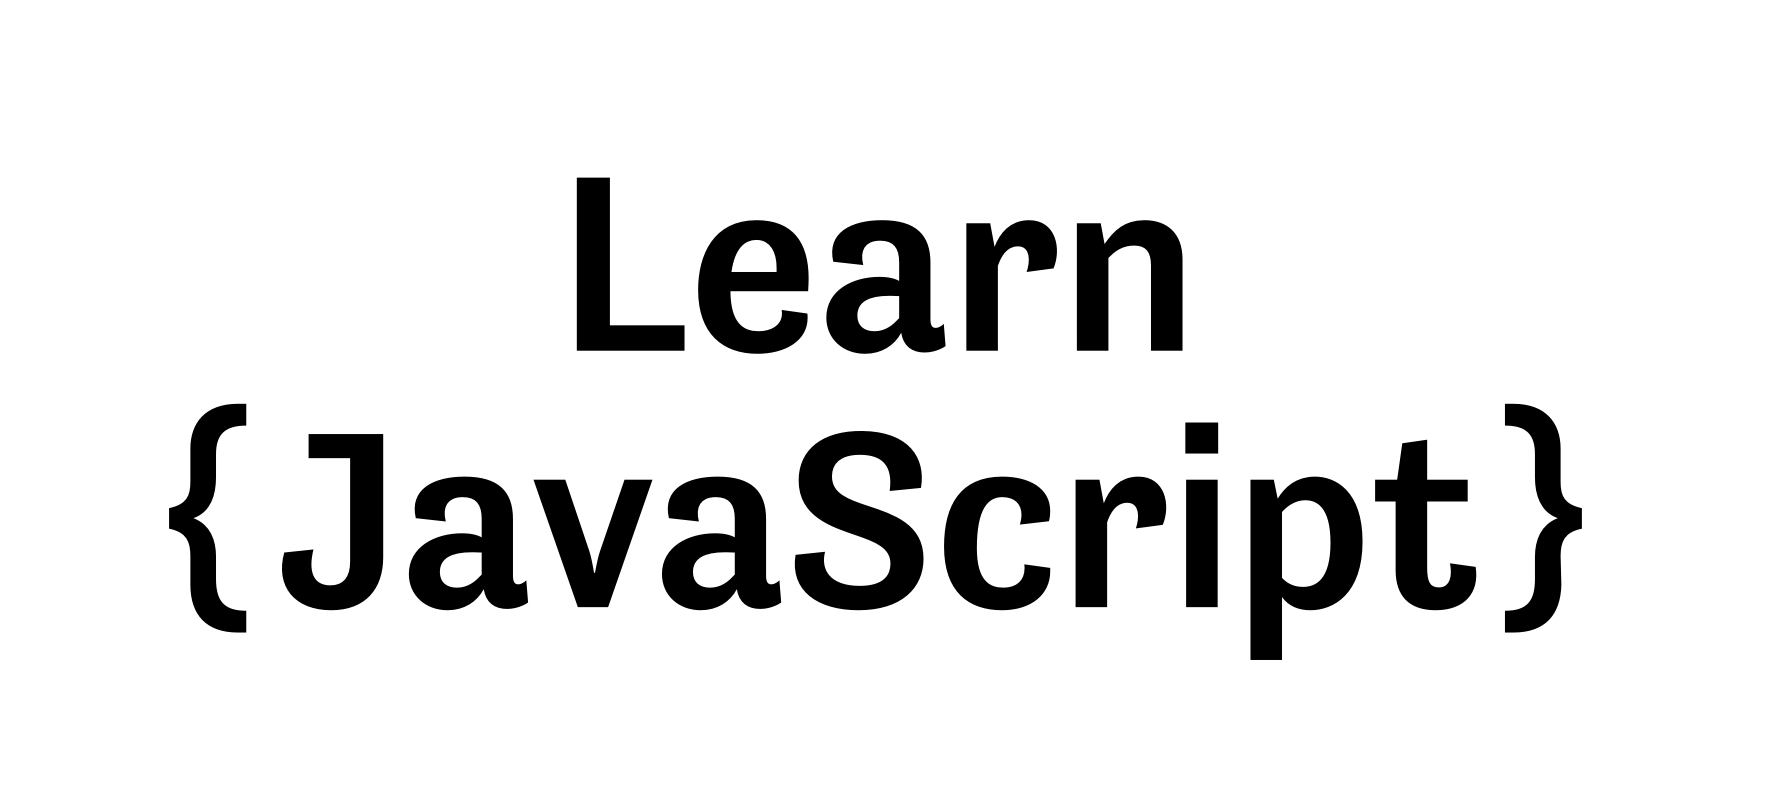 Learn JavaScript logo without animating text.